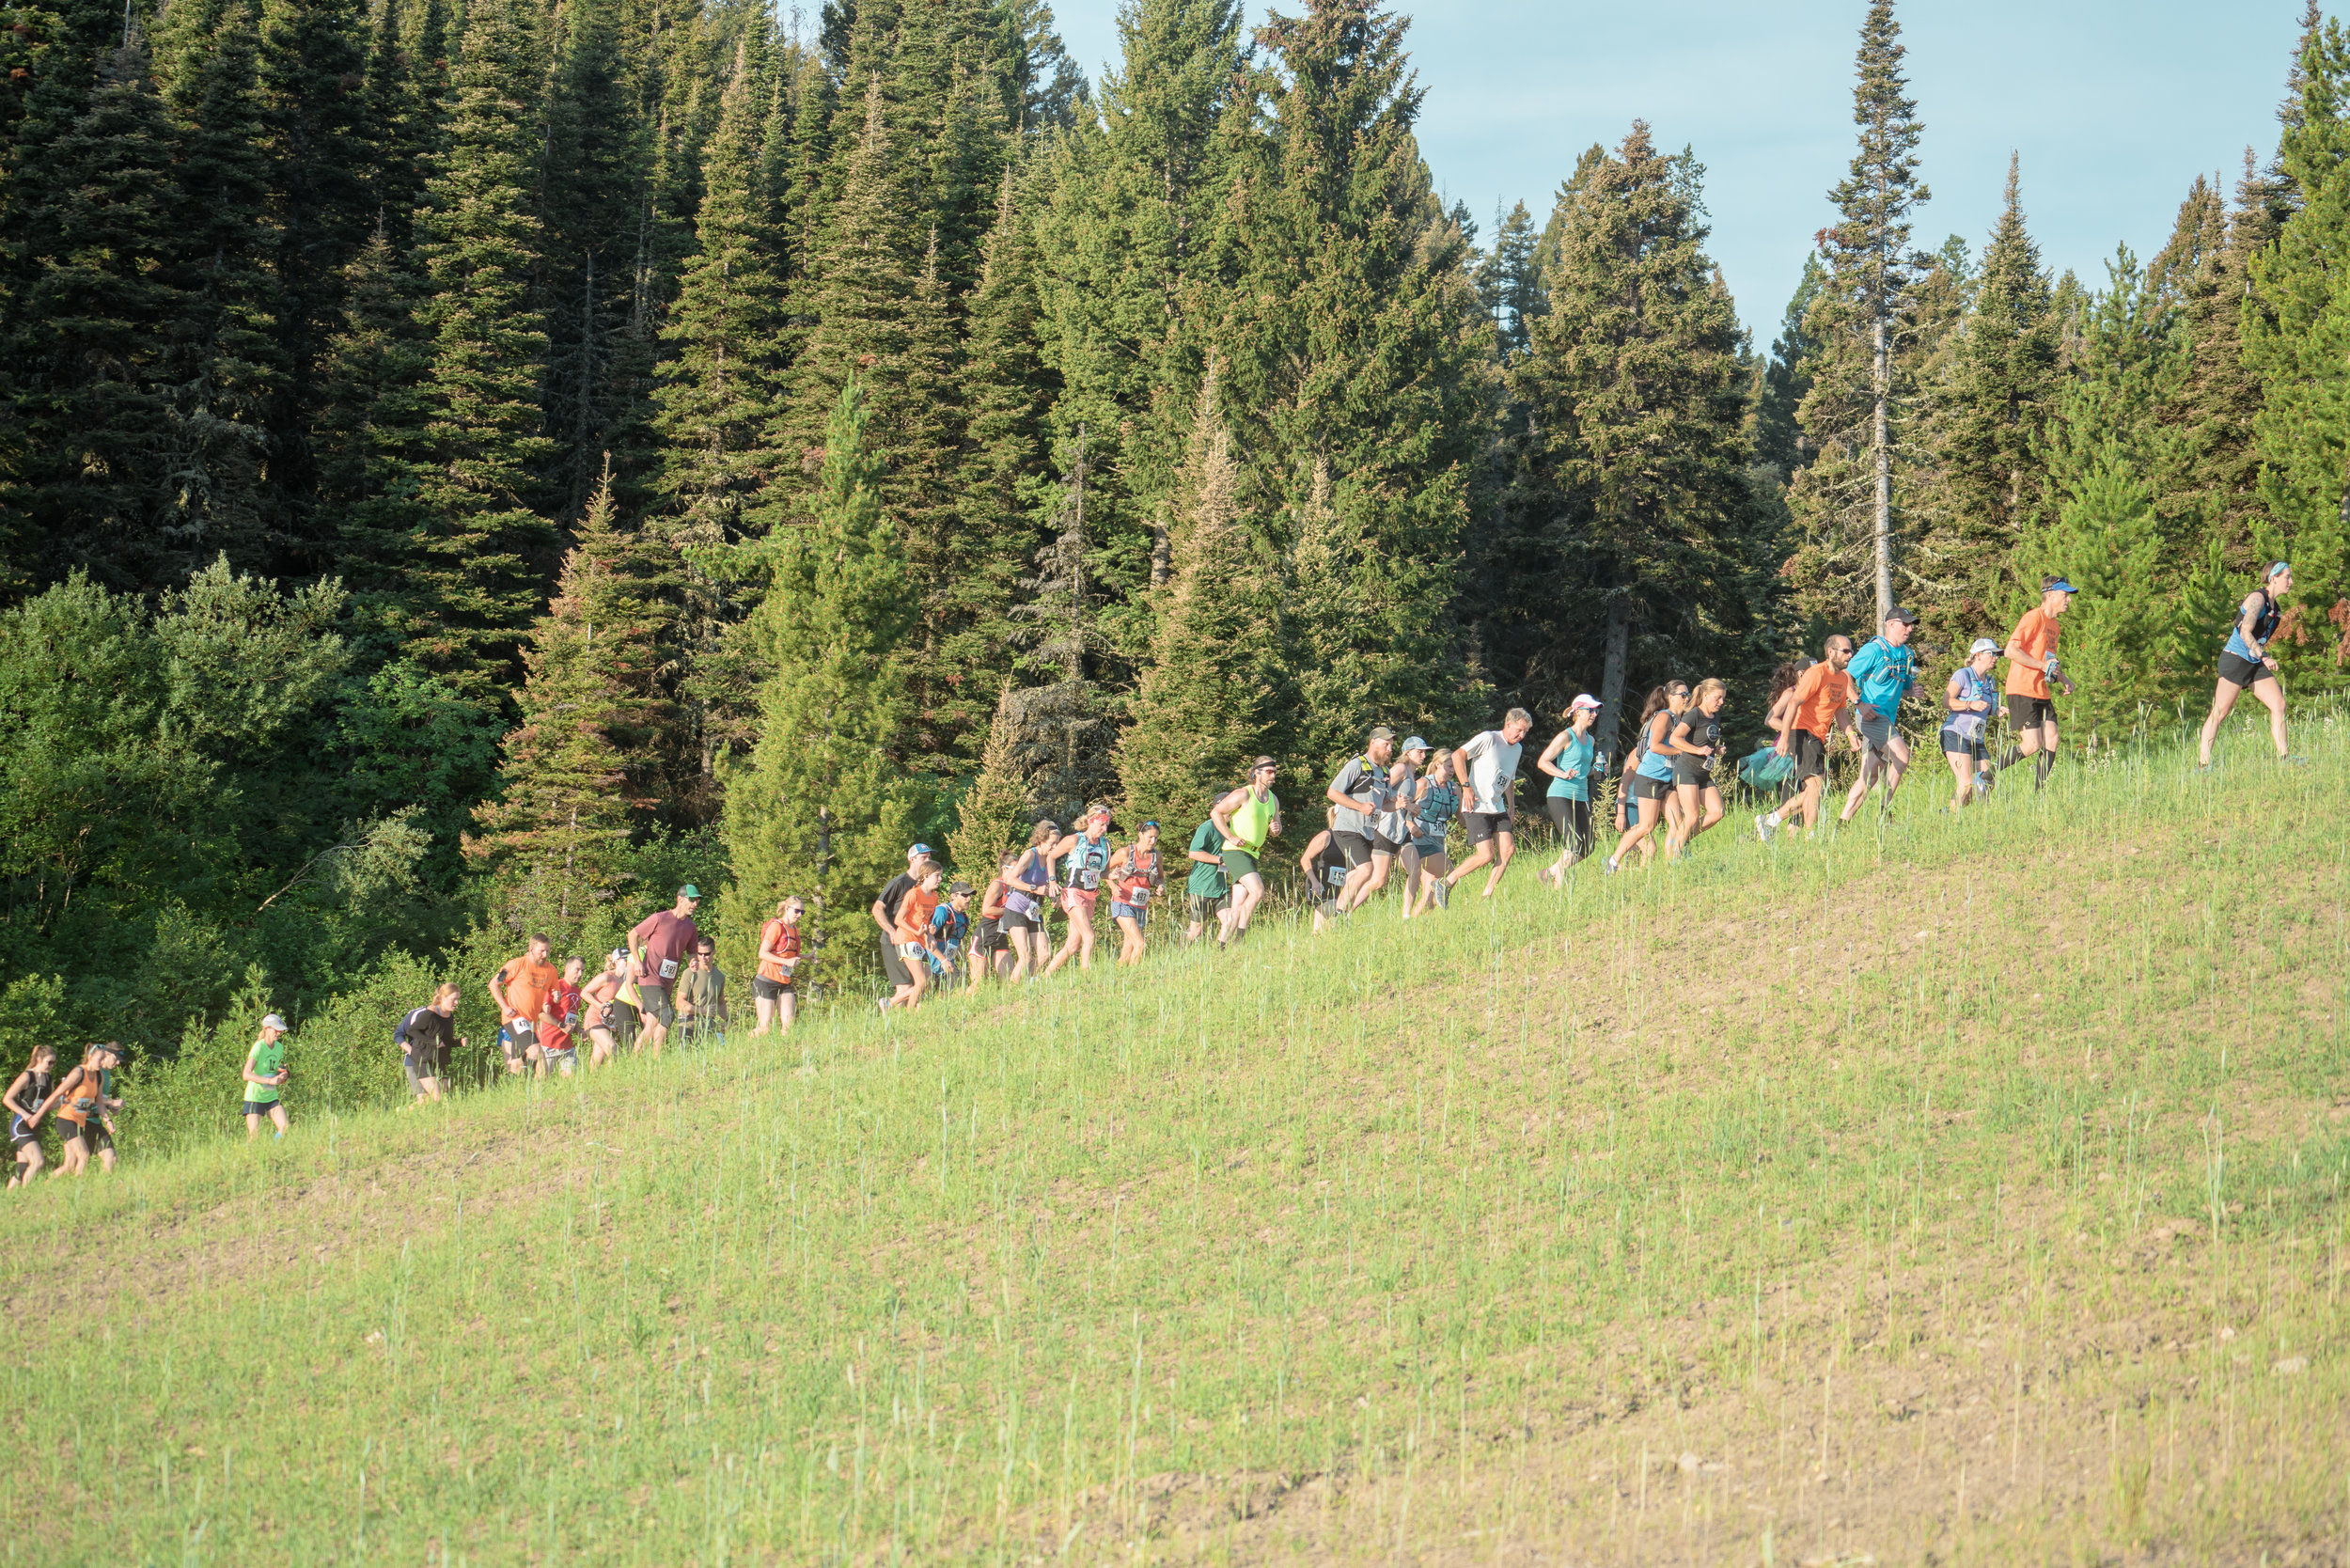 Runners at Bozeman Running Co. racing of Crosscuts at Bridger Bowl just north of Bozeman, Montana.